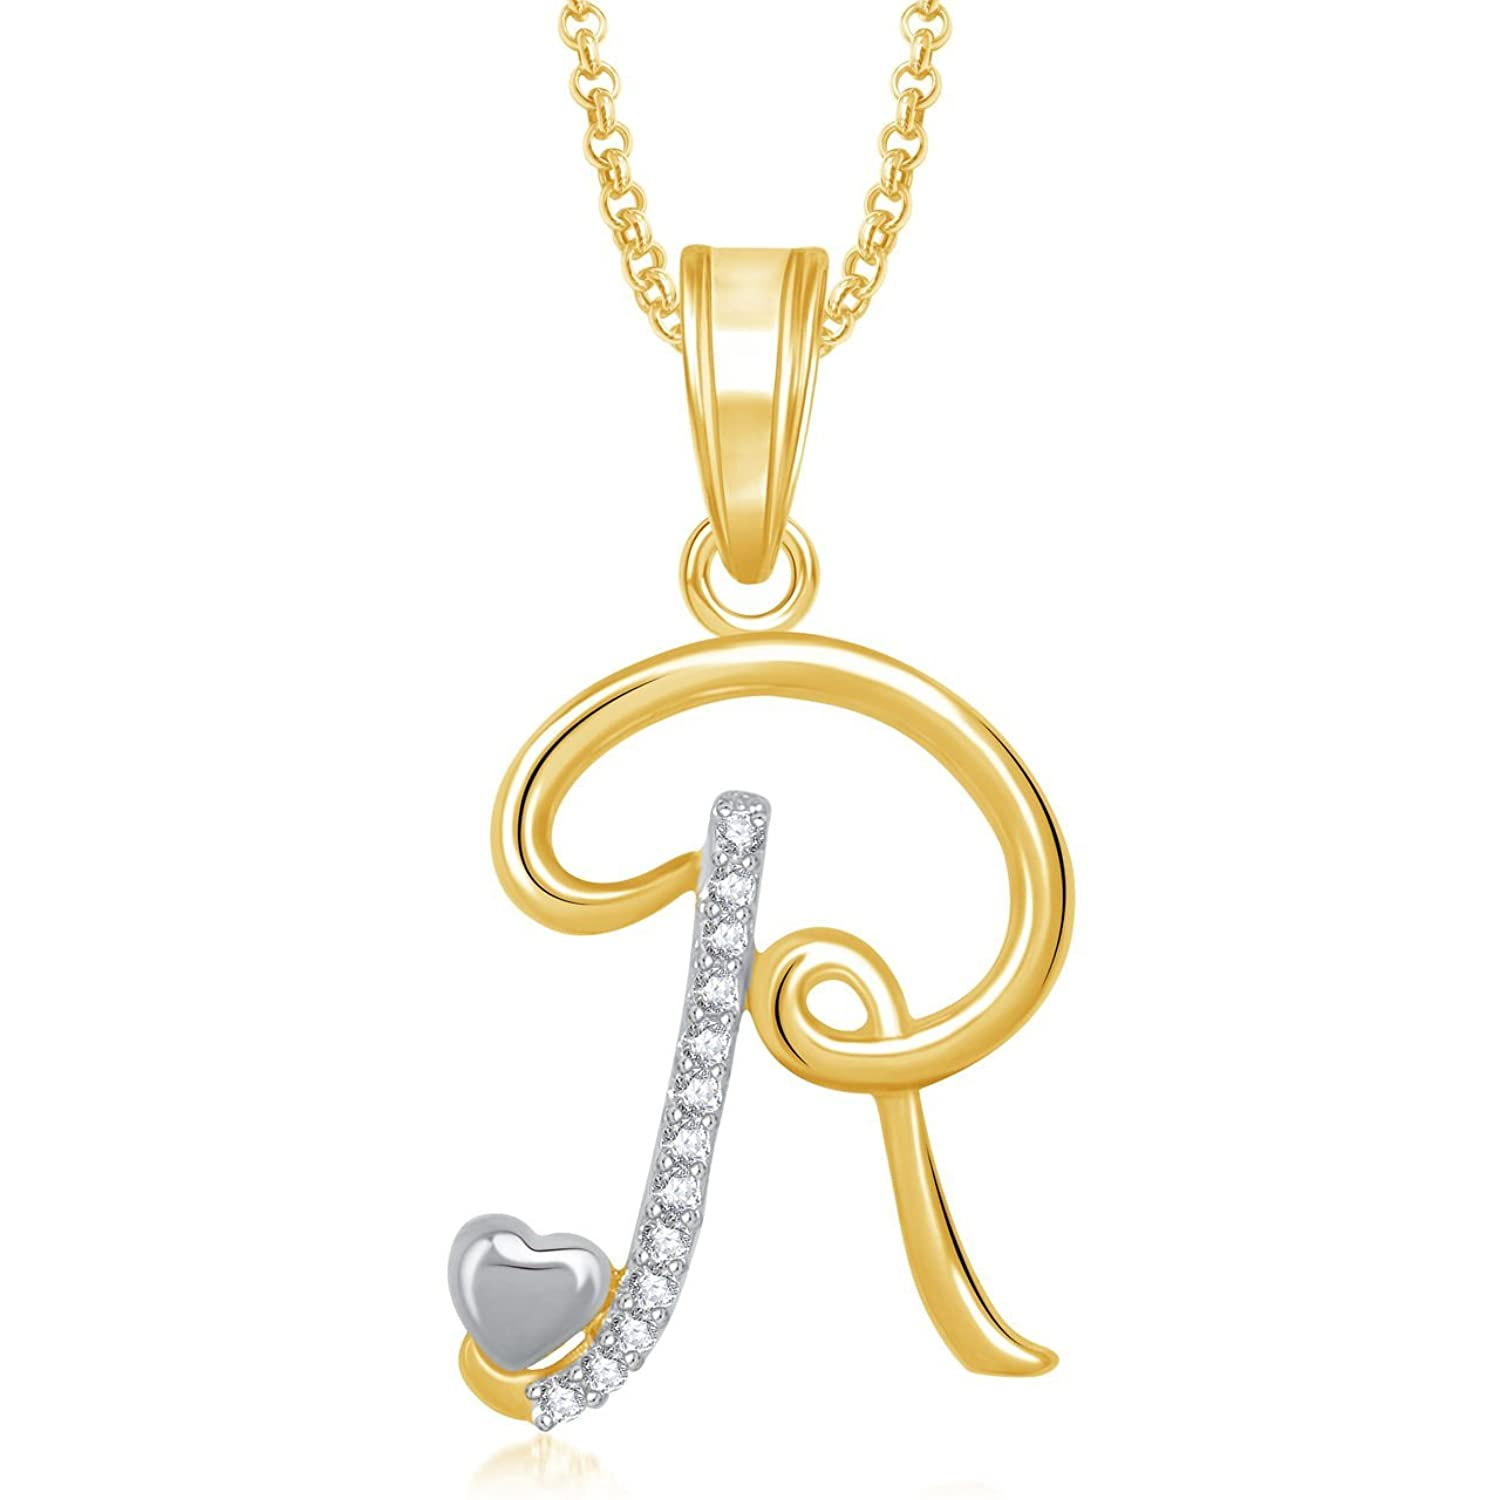 Buy valentine gifts amaal b alphabet pendant for women and men buy valentine gifts amaal b alphabet pendant for women and men with chain ps0323 online at low prices in india amazon jewellery store amazon mozeypictures Gallery